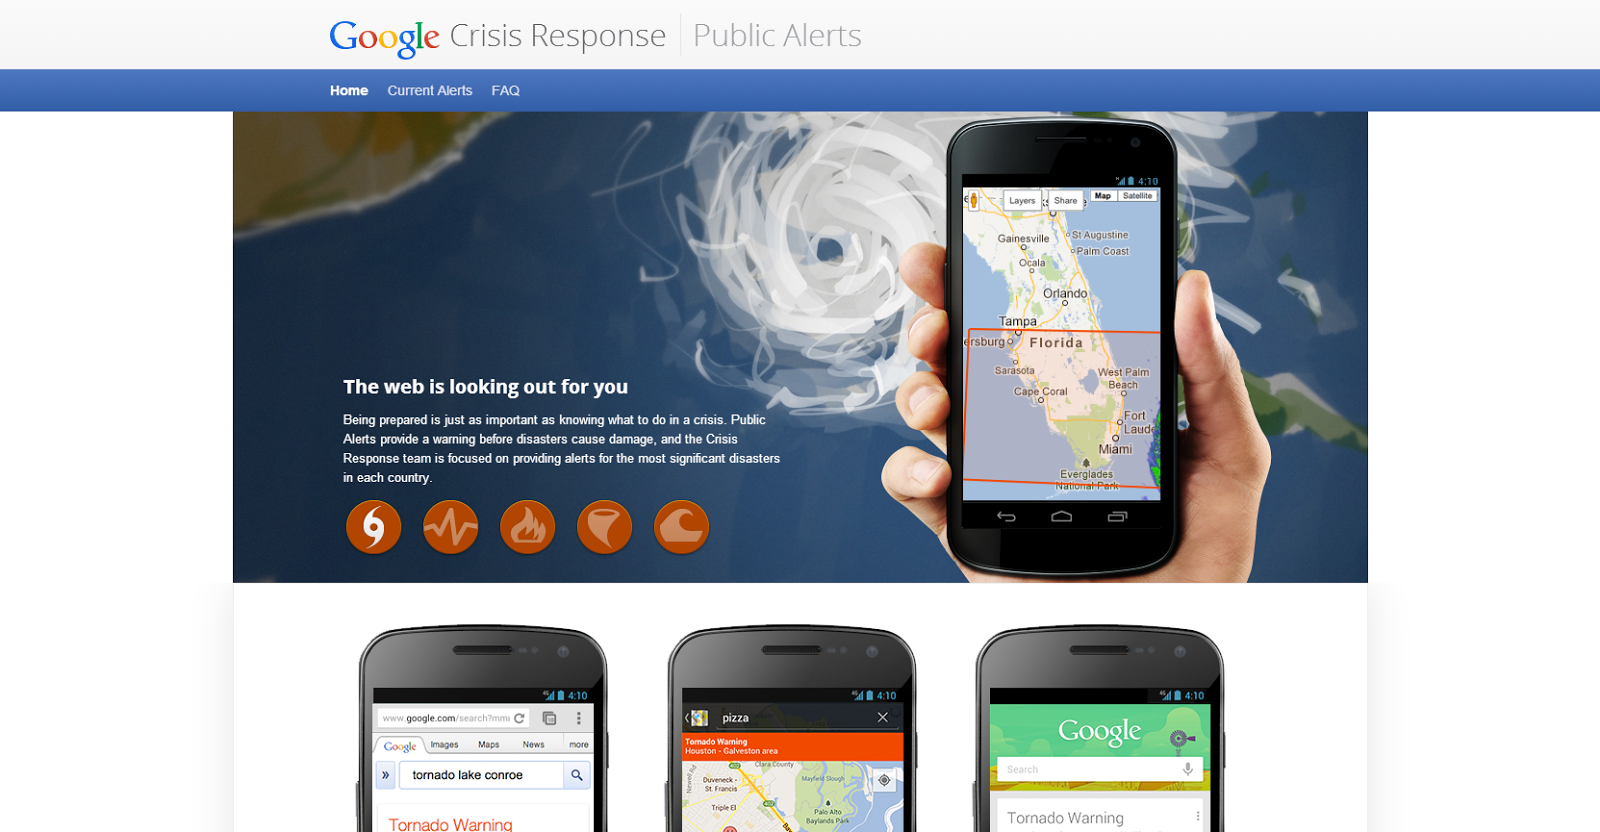 google has launched public alerts within its search and map applications to help keep you safe if you search or look at an area in a map that is under a